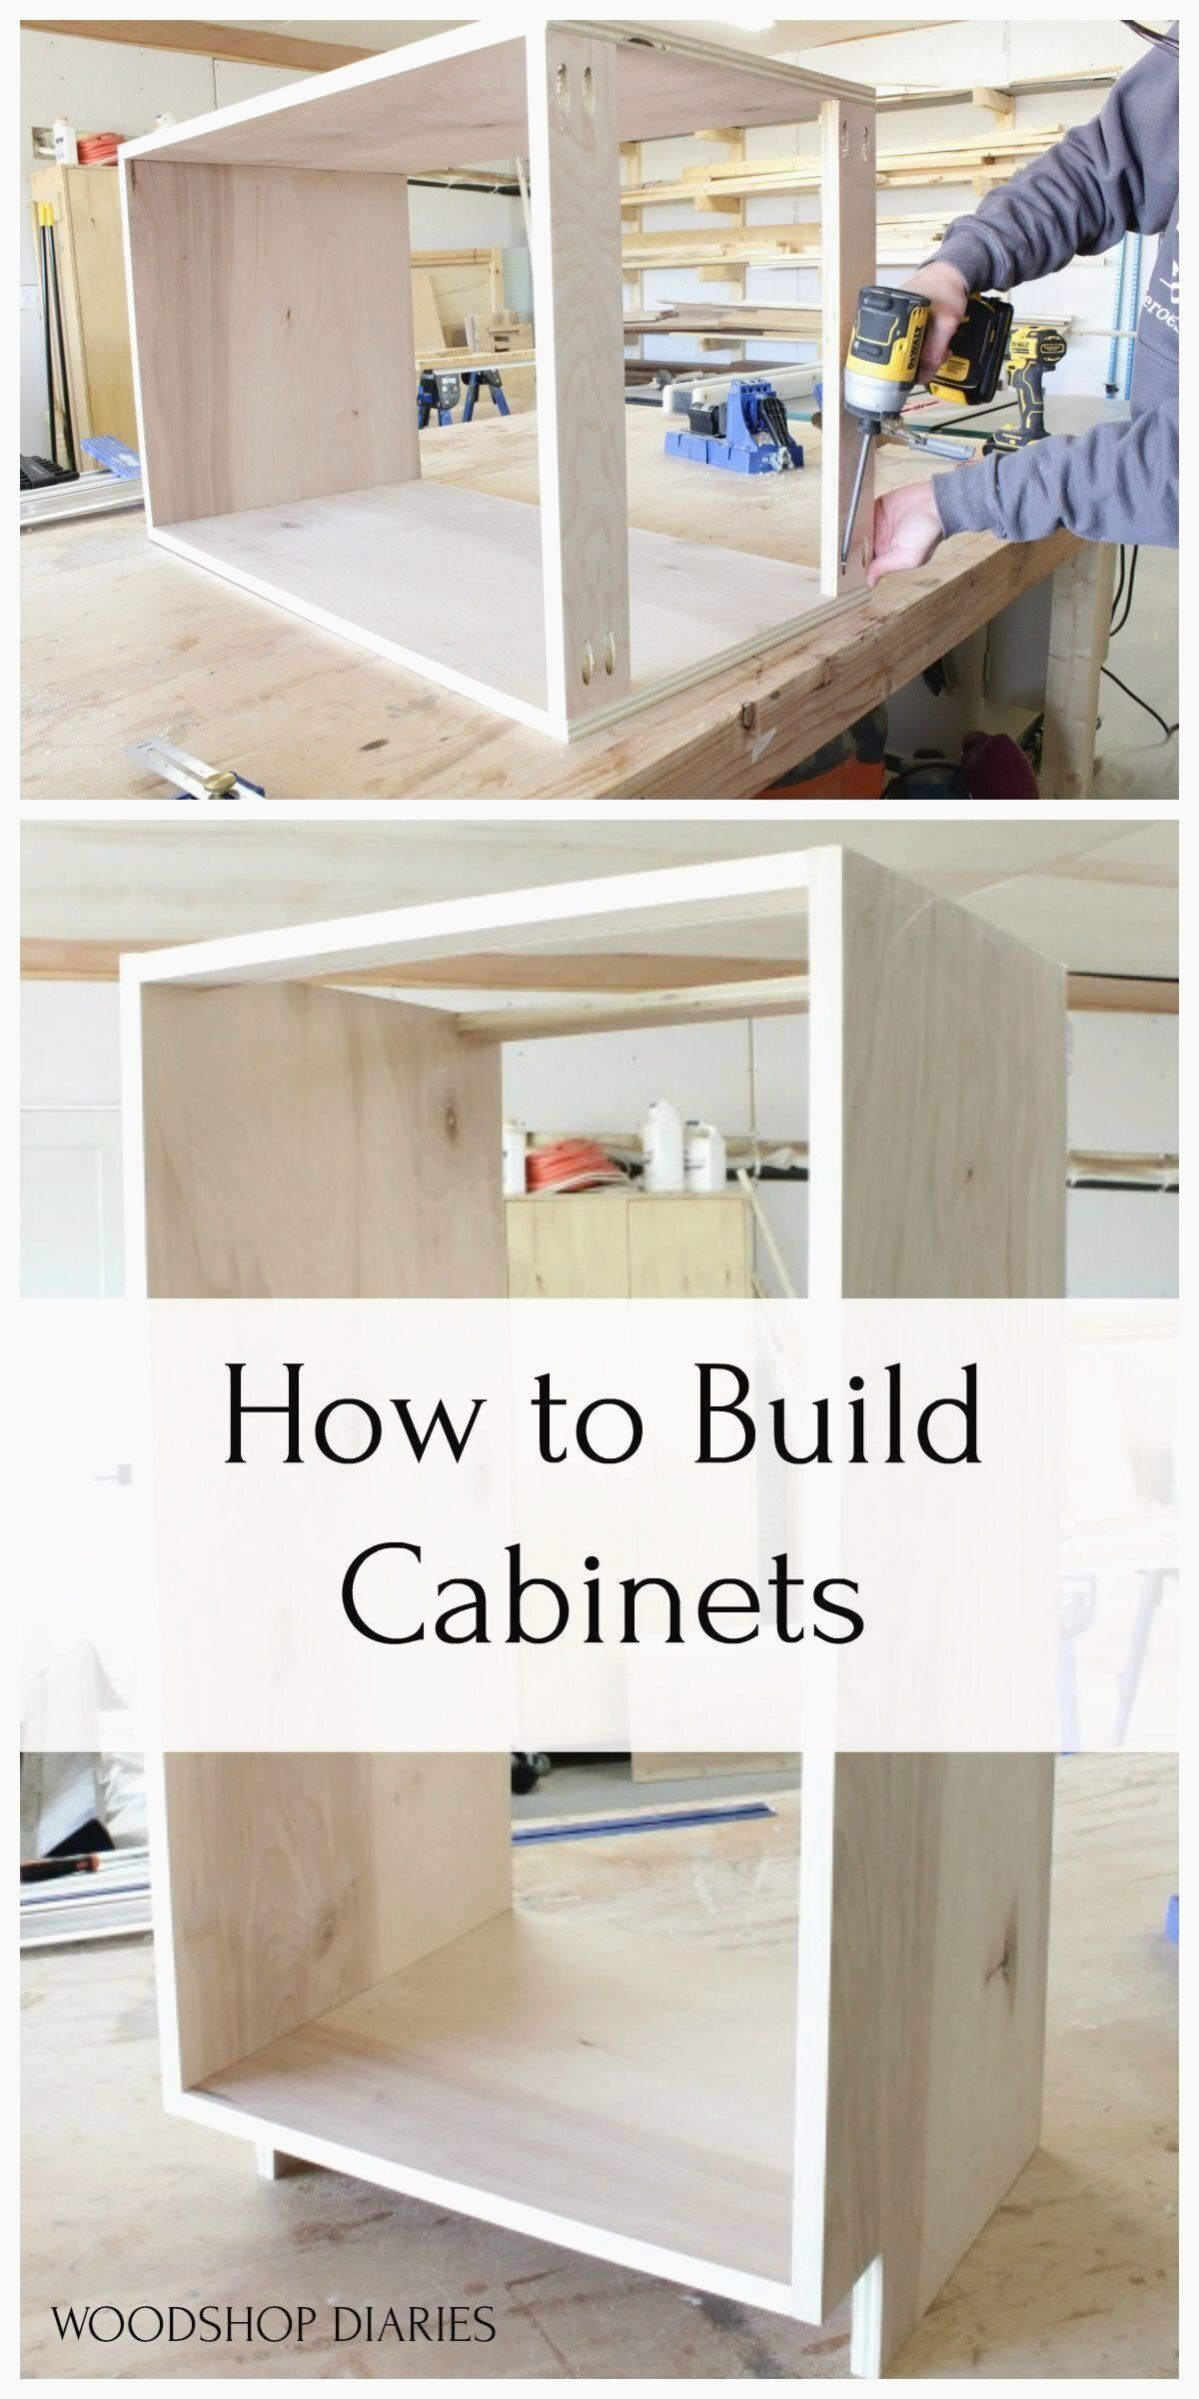 How To Build Cabinets Tutorial You Don T Need A Bunch Of Fancy Tools To Build Simple Cabinets For Kitchen In 2020 Selbstgebaute Kuchenschranke Diy Schrank Kuche Diy